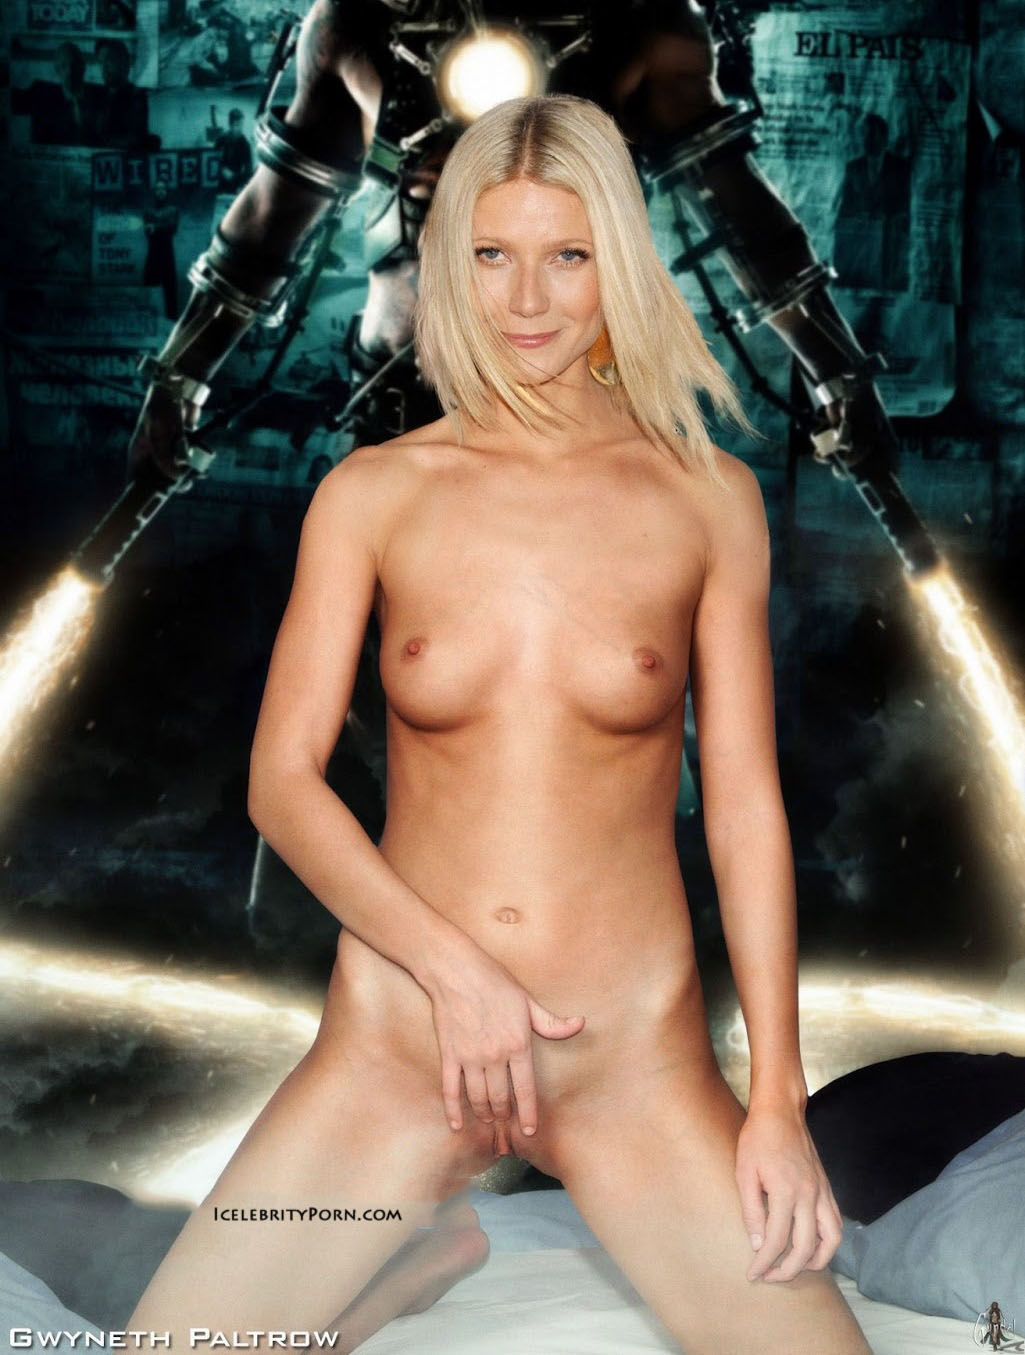 gwyneth paltrow topless naked fakes nude